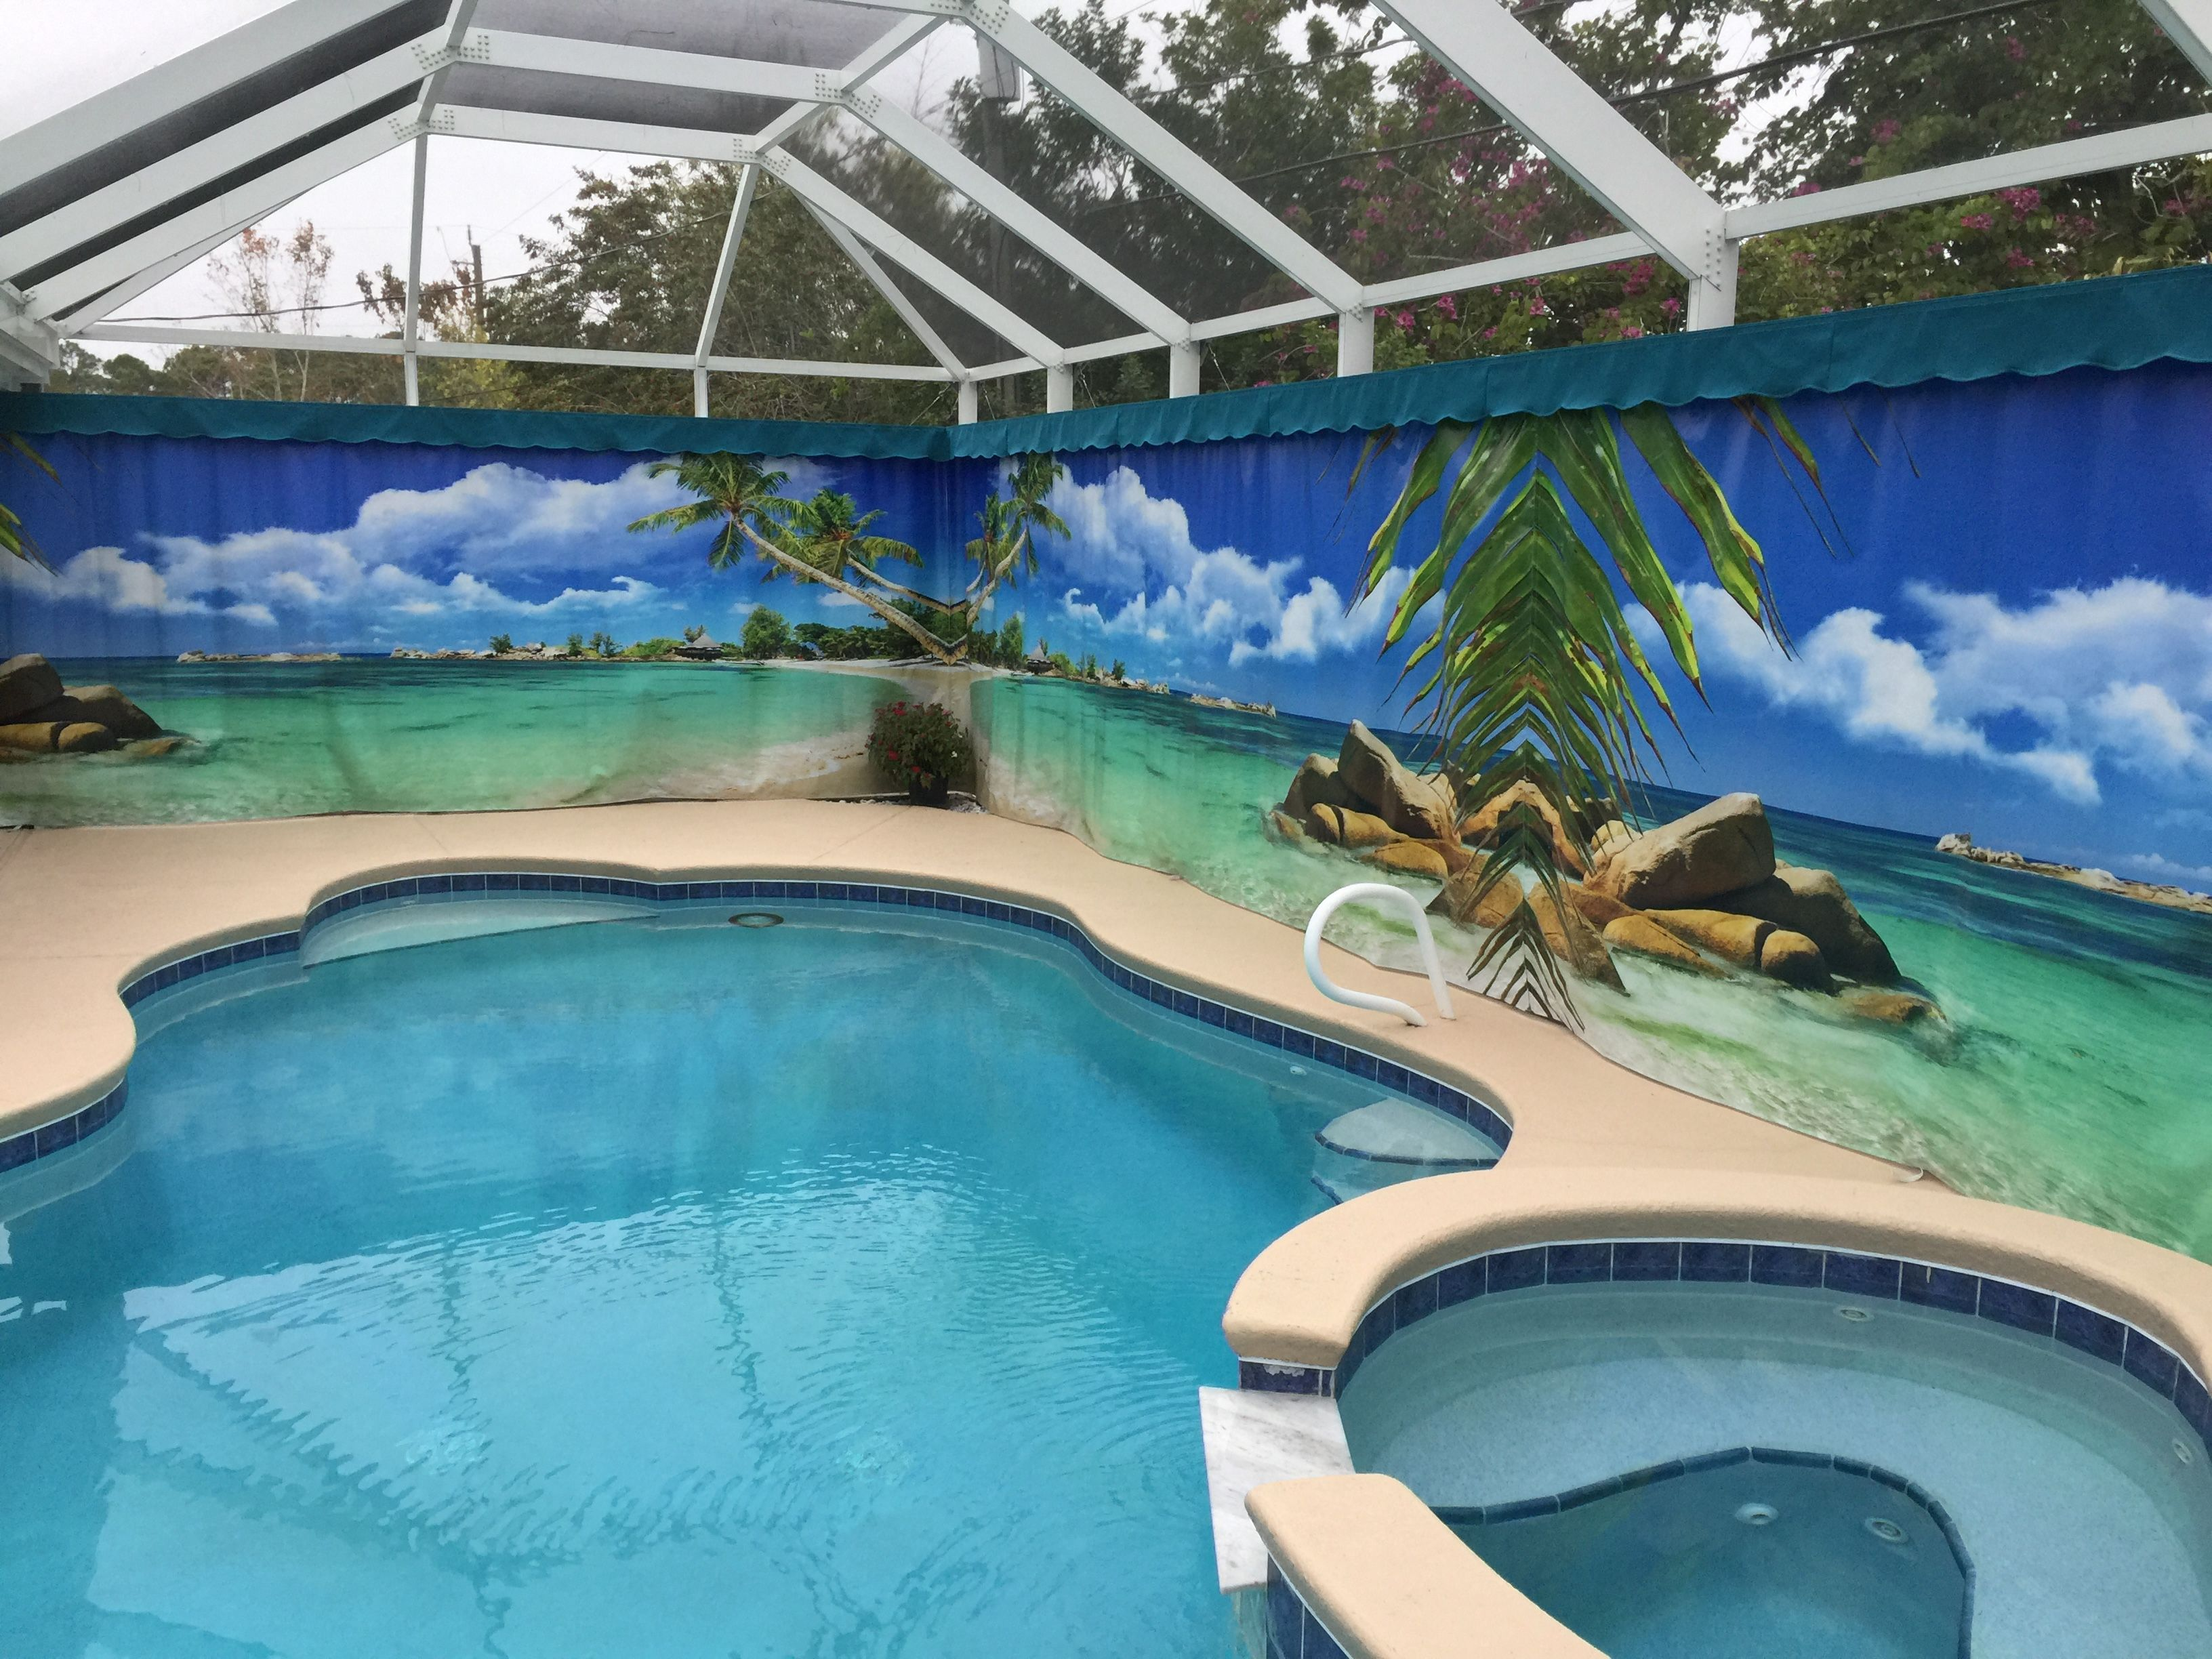 Gallery Privacy On Demand Inc Outdoor Privacy Curtains Outdoor Privacy Florida Pool Privacy Curtains